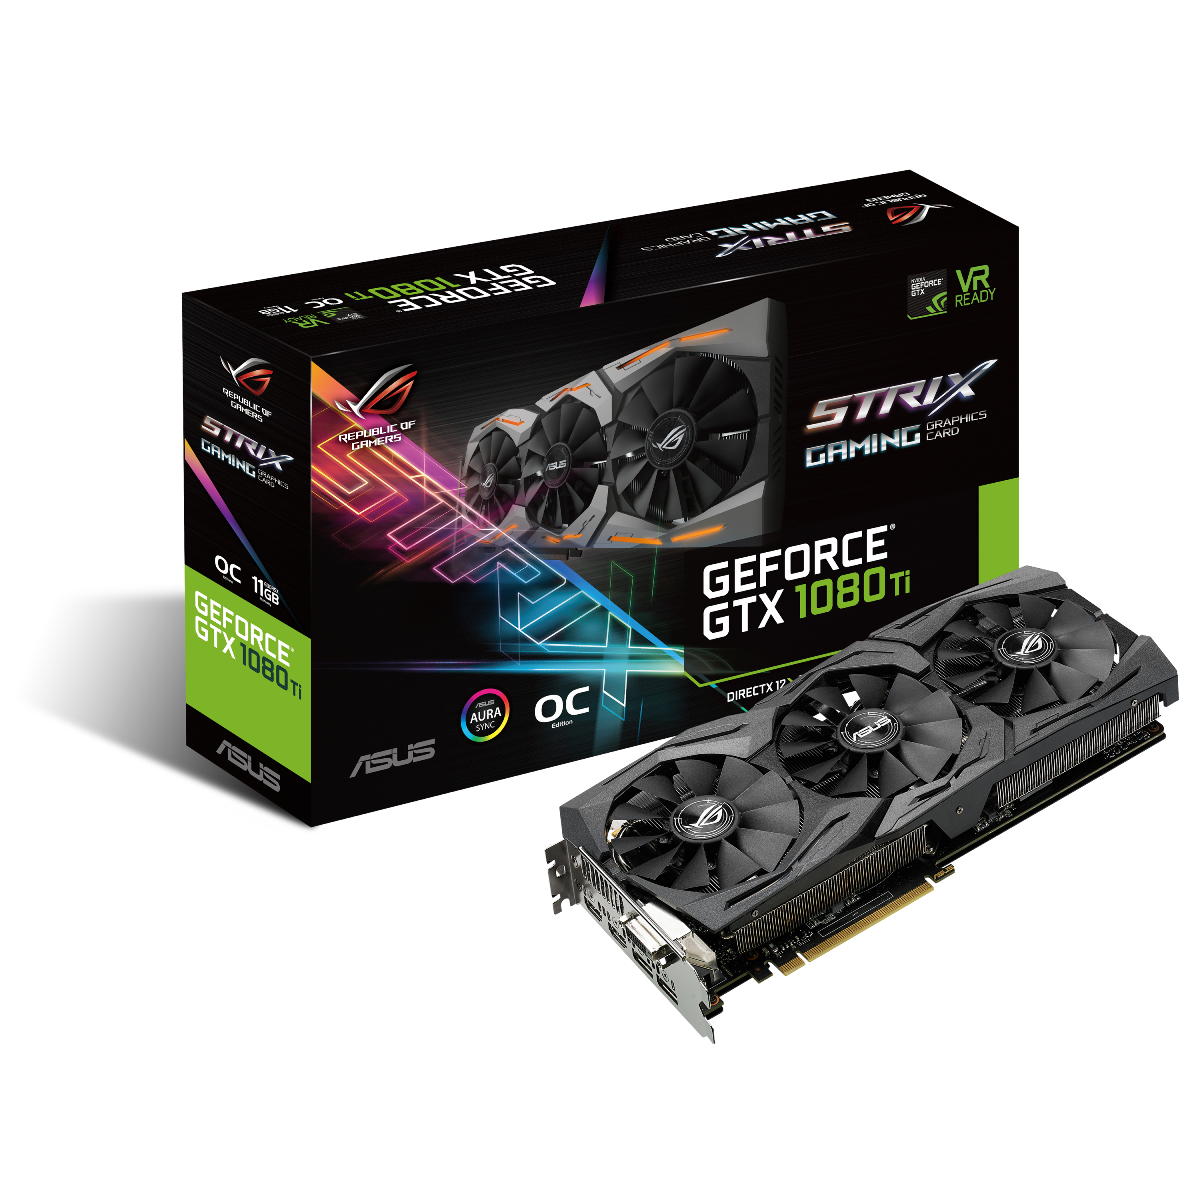 ROG-STRIX-GTX1080TI-O11G-GAMING_box+vga